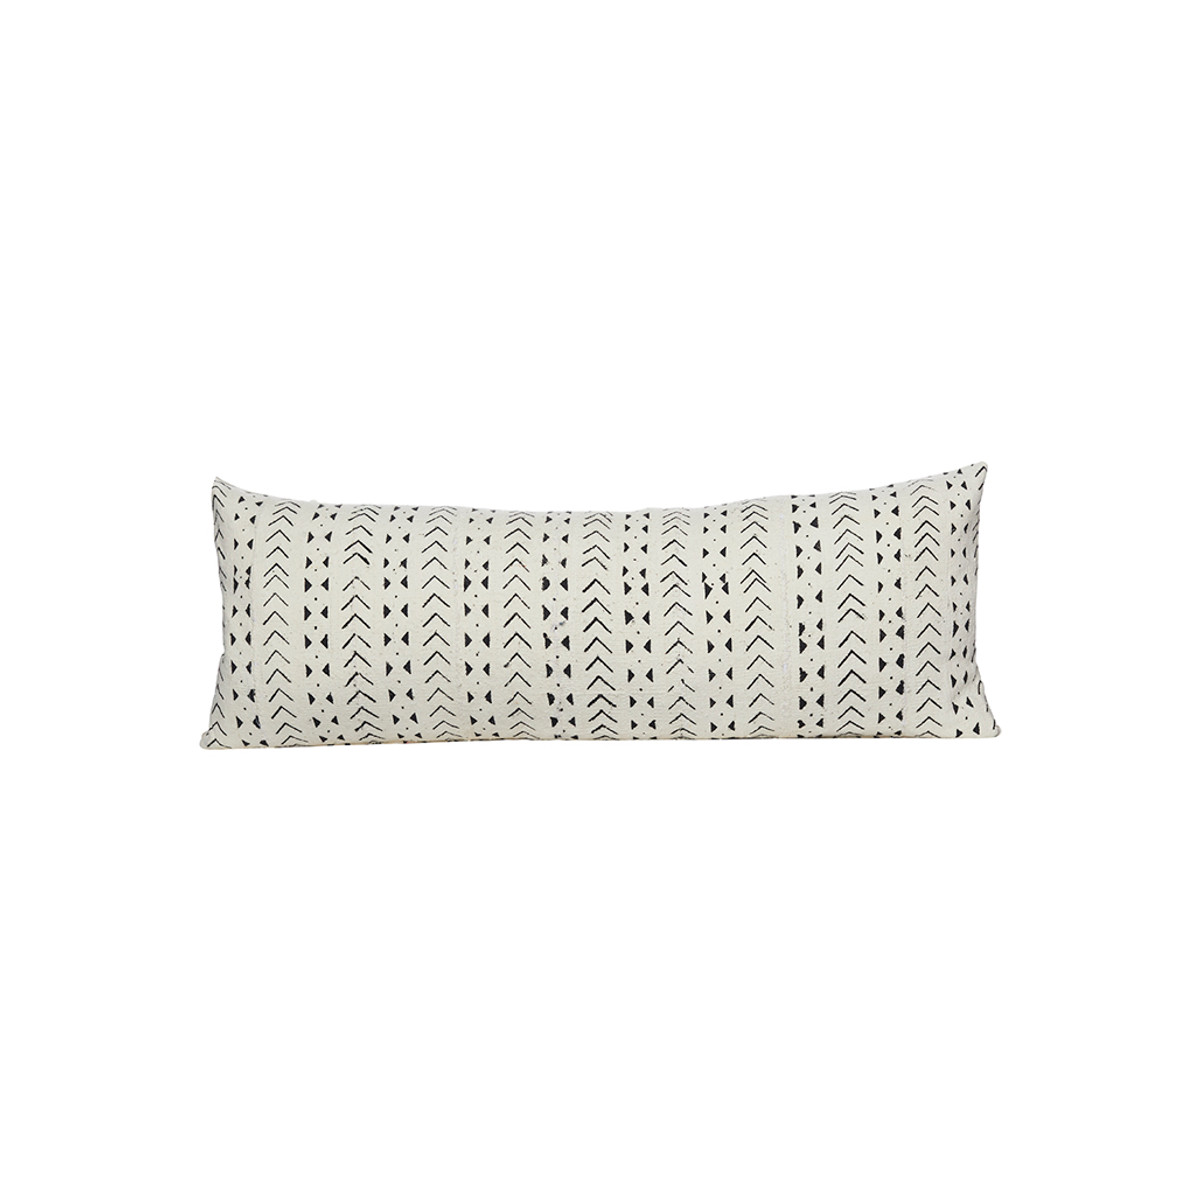 Milly White and black Mud Cloth Pillow - Front